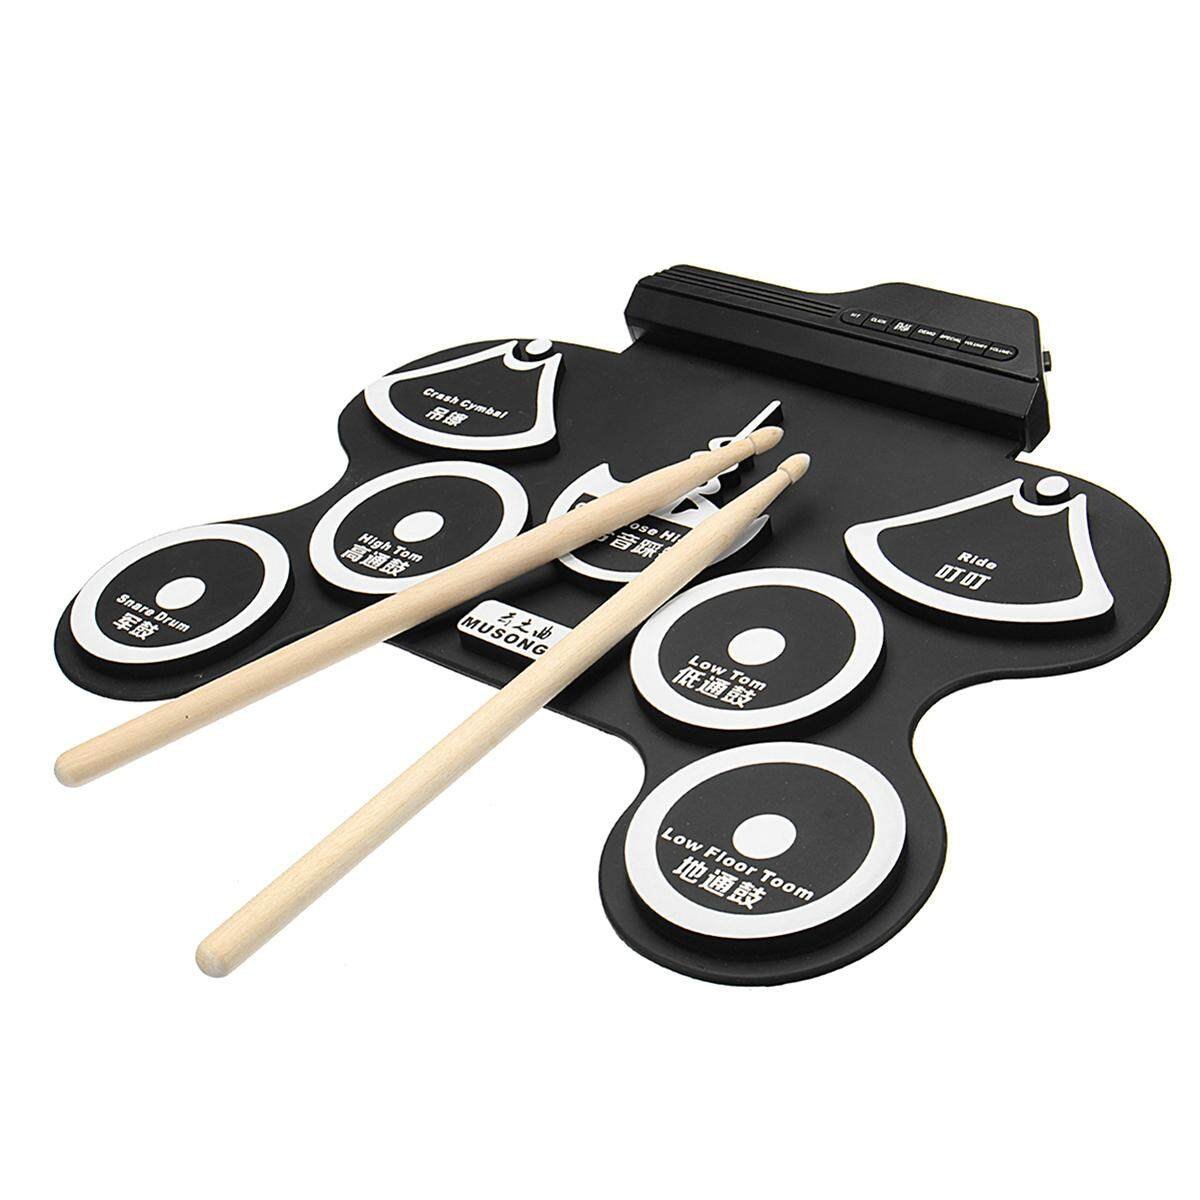 7 Pad Portable Electric Drum Record Stick Pad Silicon Electronic Roll Up Kit Set Black